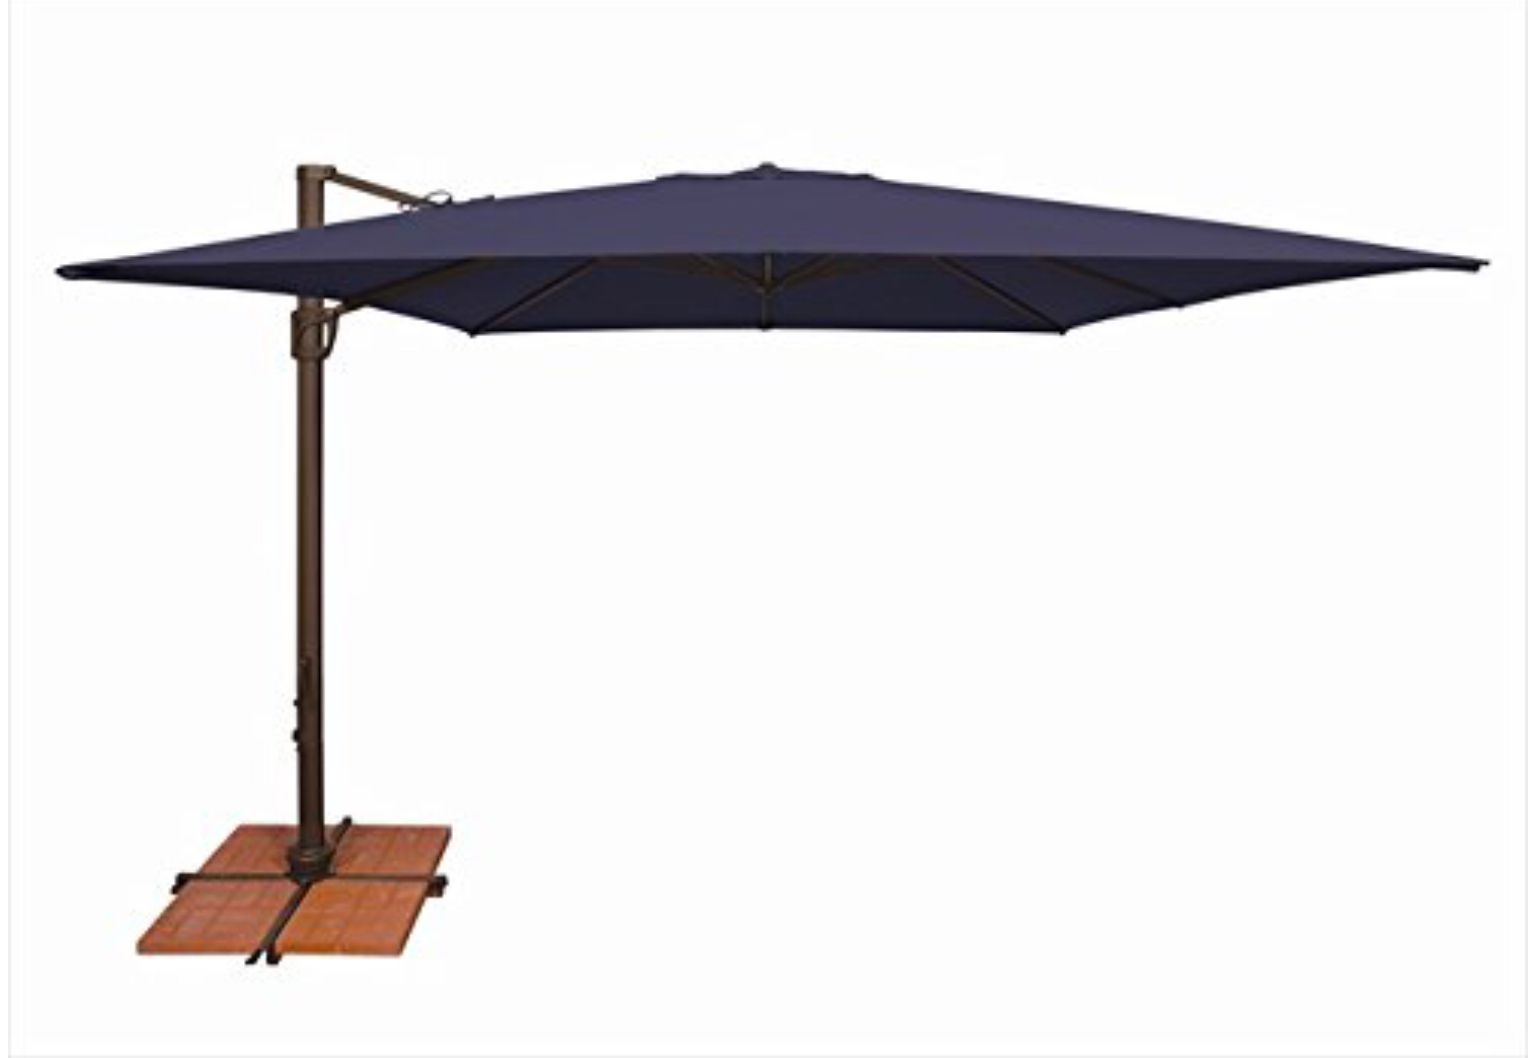 10 Foot Sunbrella Navy 780 Amazon Cantilever Umbrella Offset Patio Umbrella Rectangular Patio Umbrella